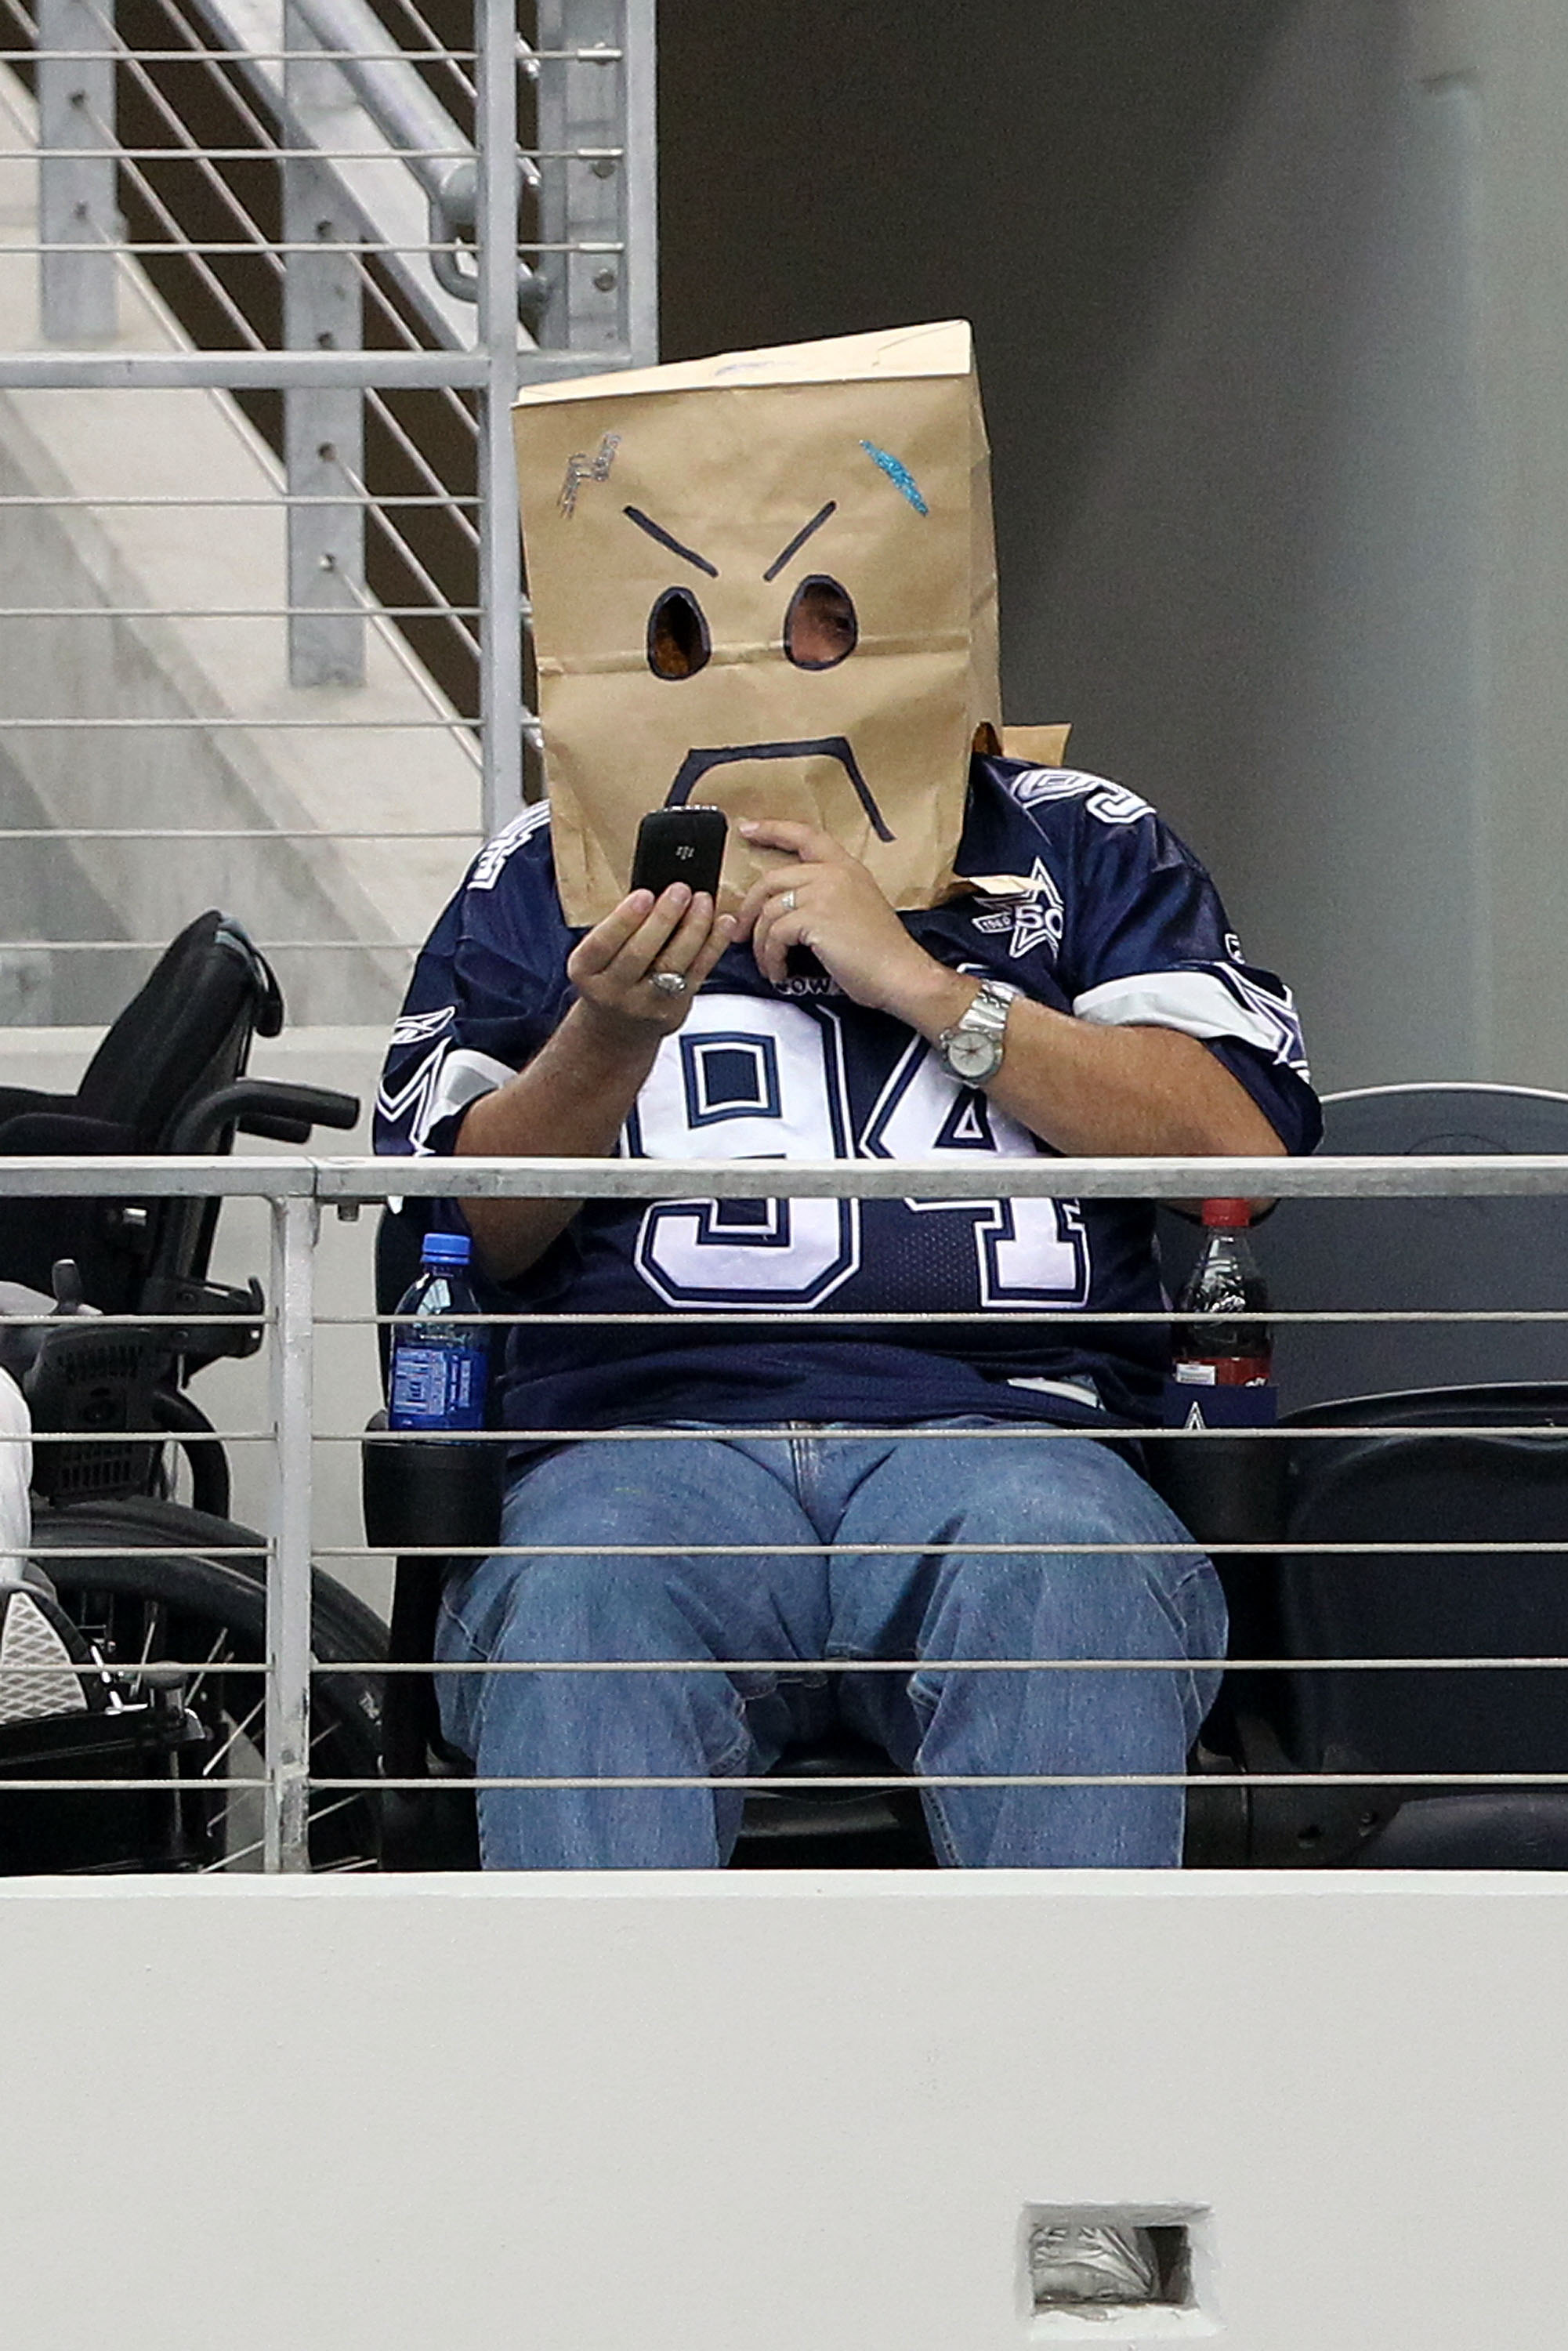 ARLINGTON, TX - OCTOBER 31:  A fan of the Dallas Cowboys wears a brown paper bag on his  head as he looks at his phone against the Jacksonville Jaguars at Cowboys Stadium on October 31, 2010 in Arlington, Texas.  (Photo by Chris Chambers/Getty Images)